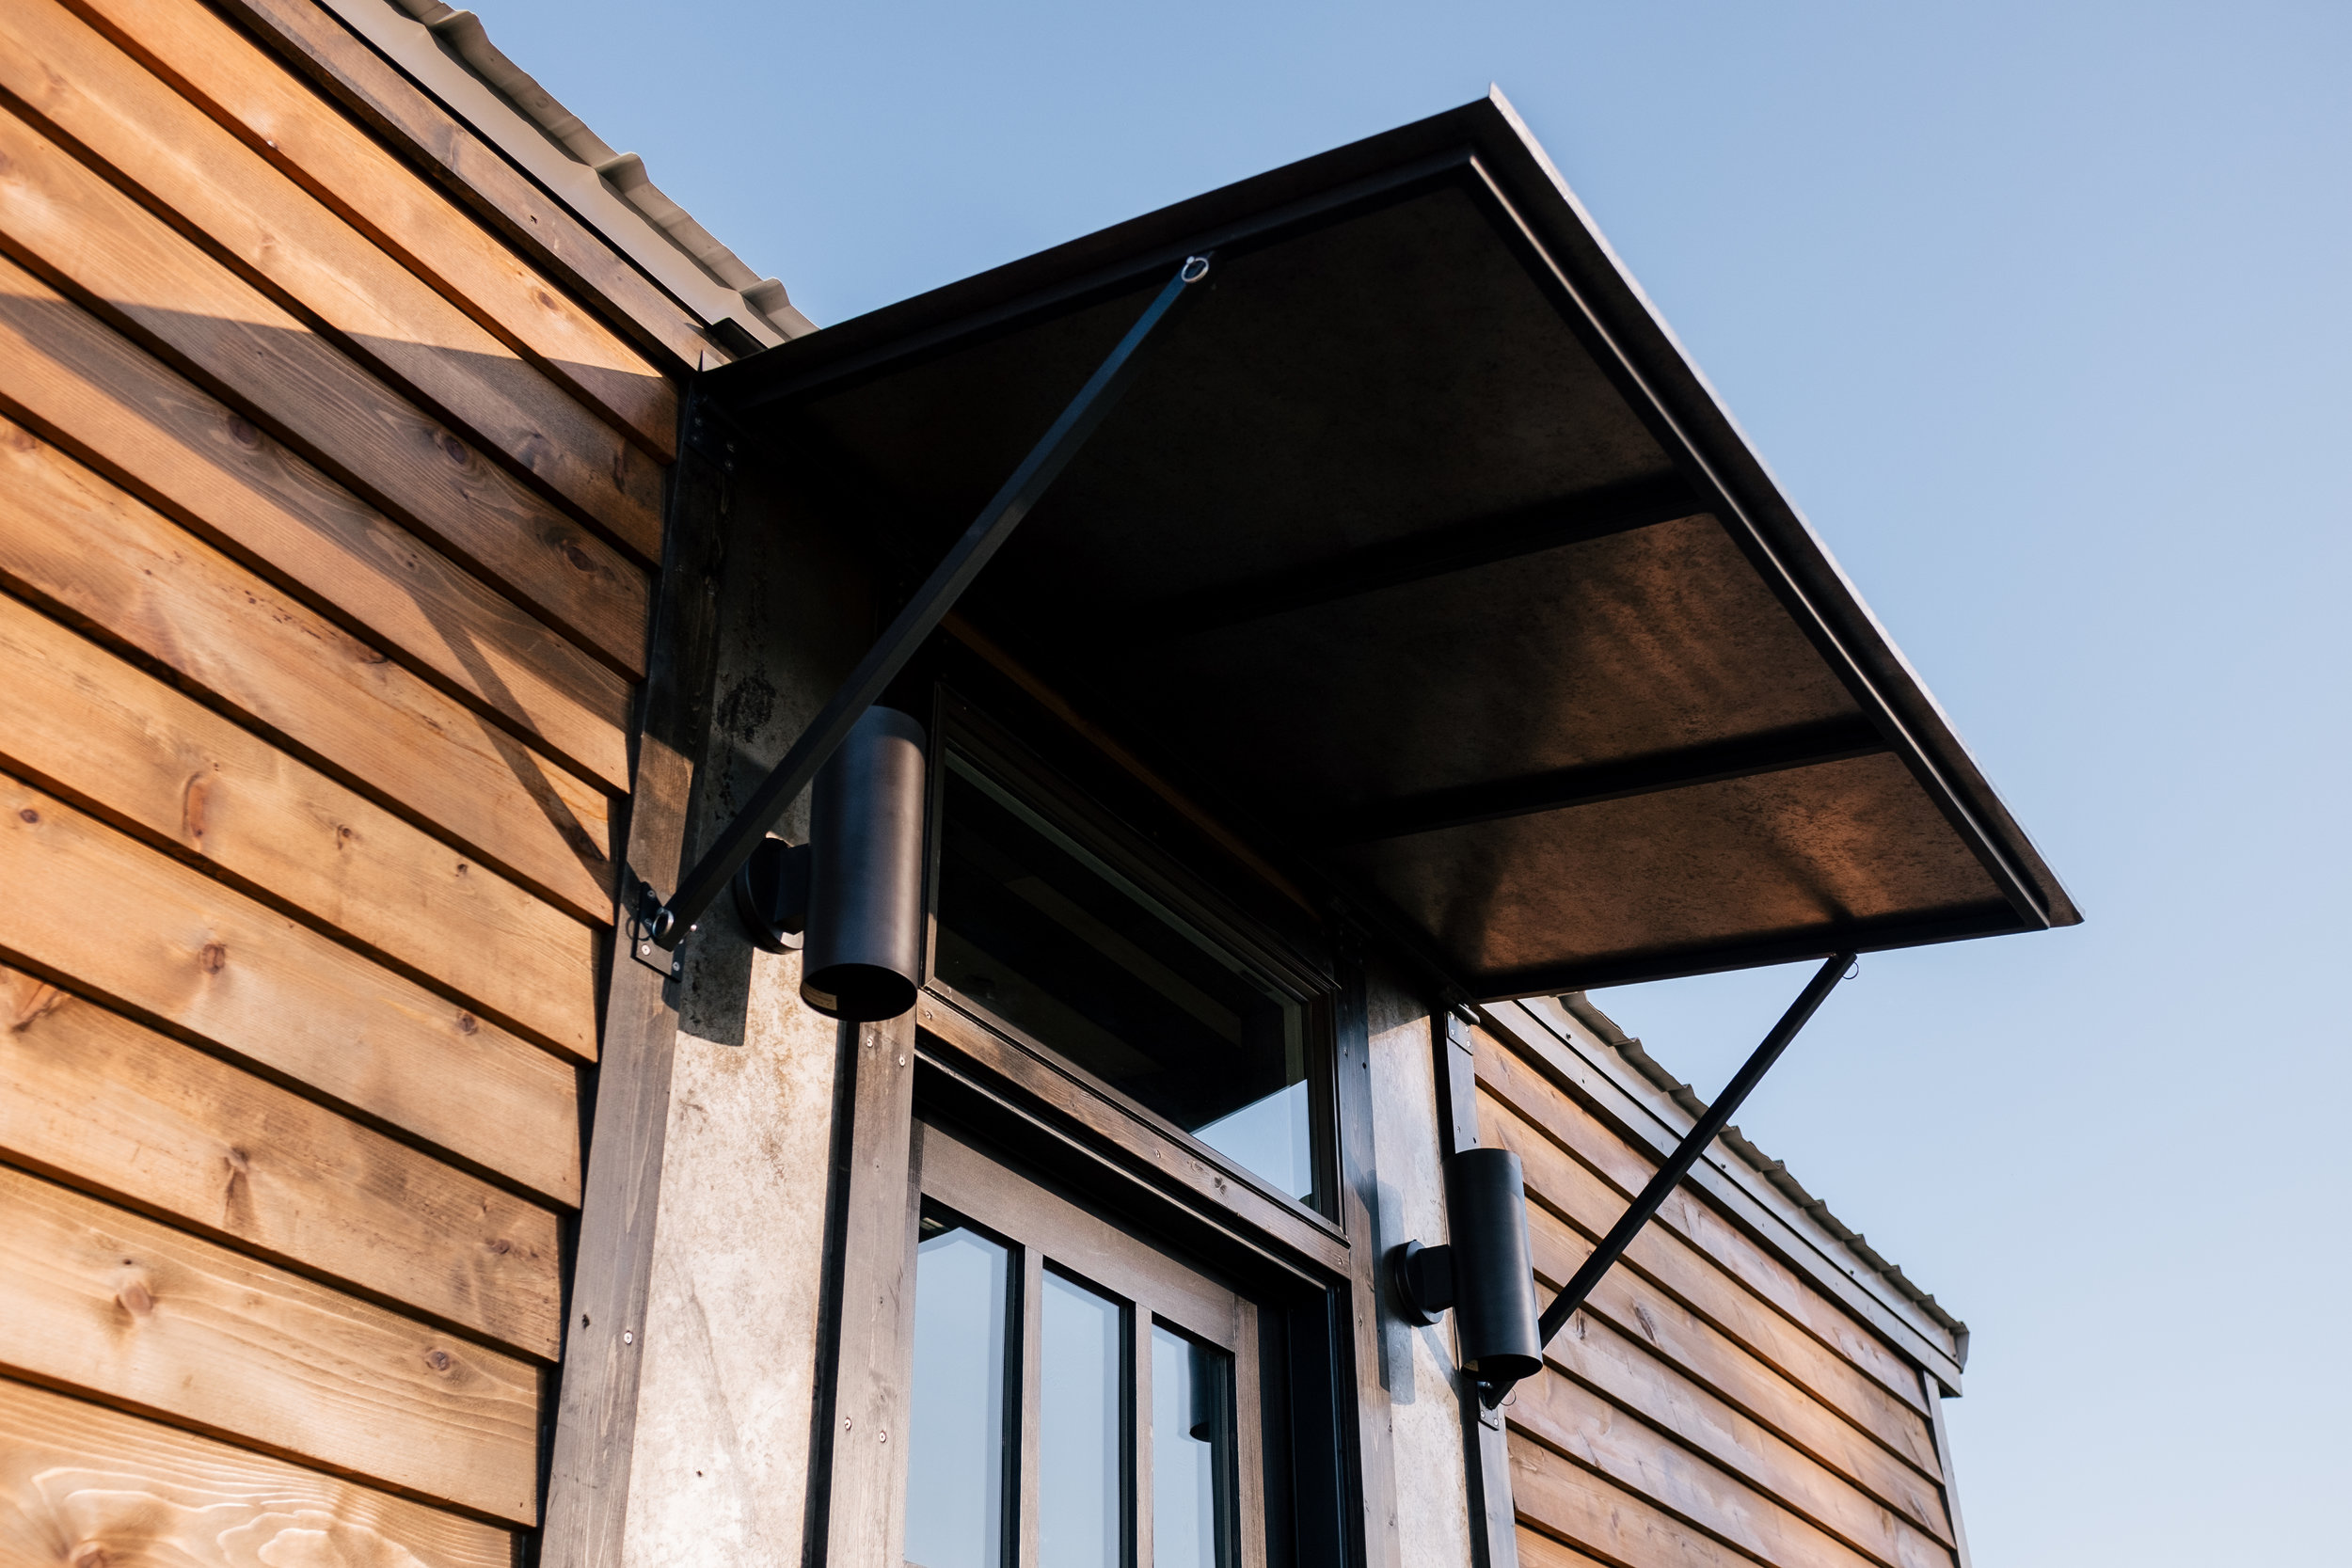 The Silhouette by Wind River Tiny Homes - rustic, cedar siding, patina steel clad siding, fold down awning